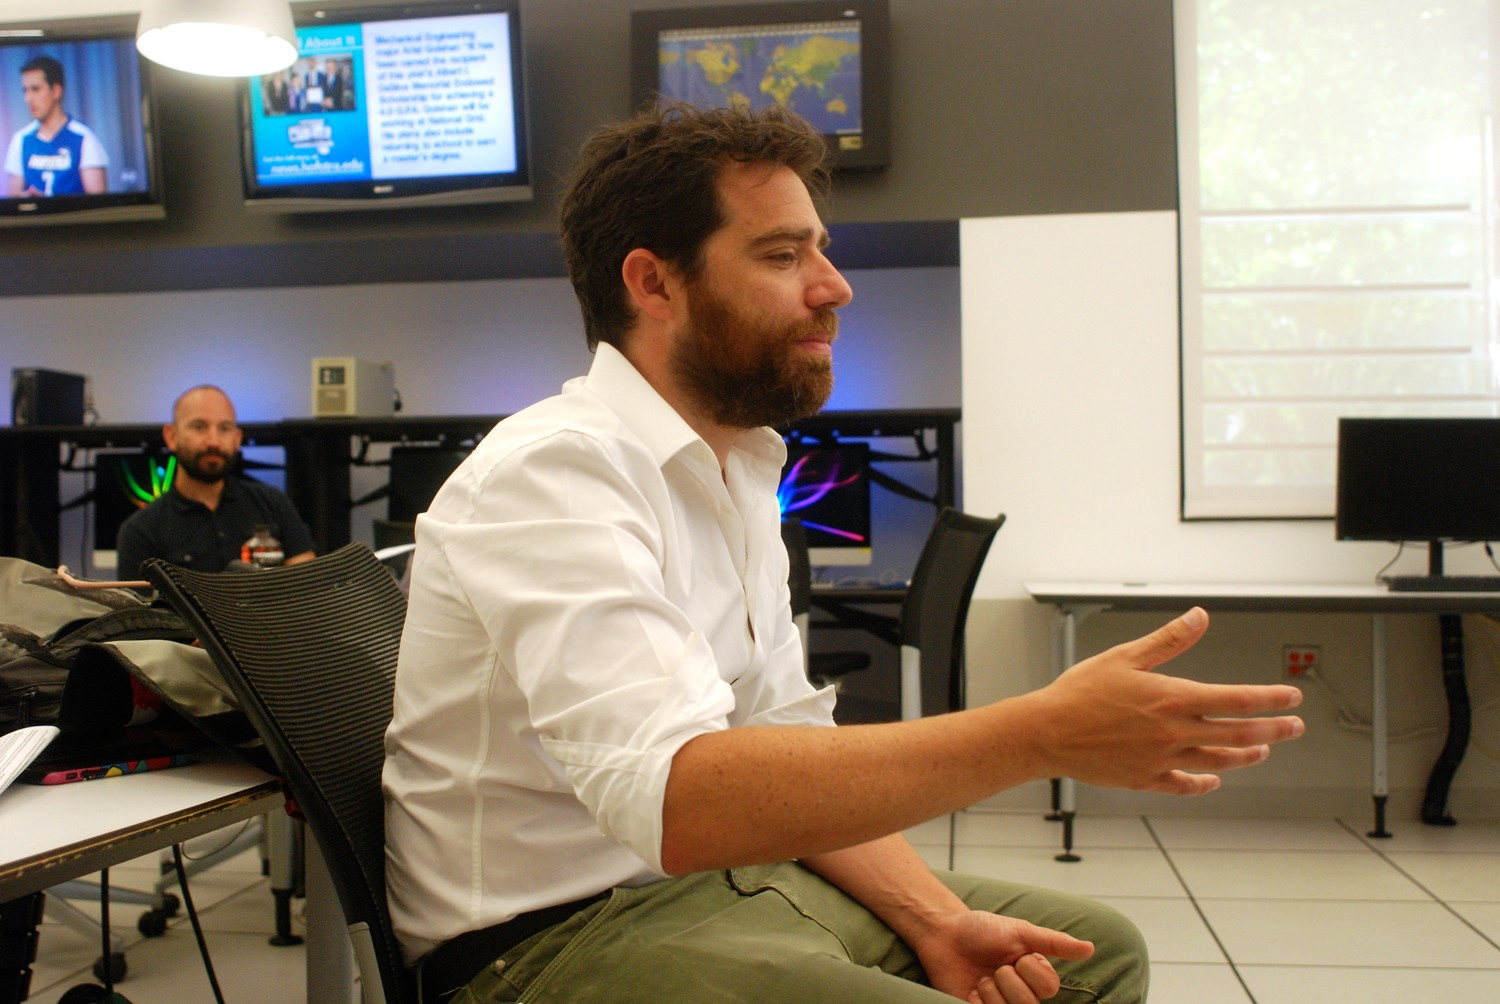 Michael Otterman, formerly of Merrick, and the author of two books on the Iraq War, was among the many speakers at the recent Hofstra University High School Summer Journalism Institute, which is co-directed by Heralds Executive Editor Scott Brinton.